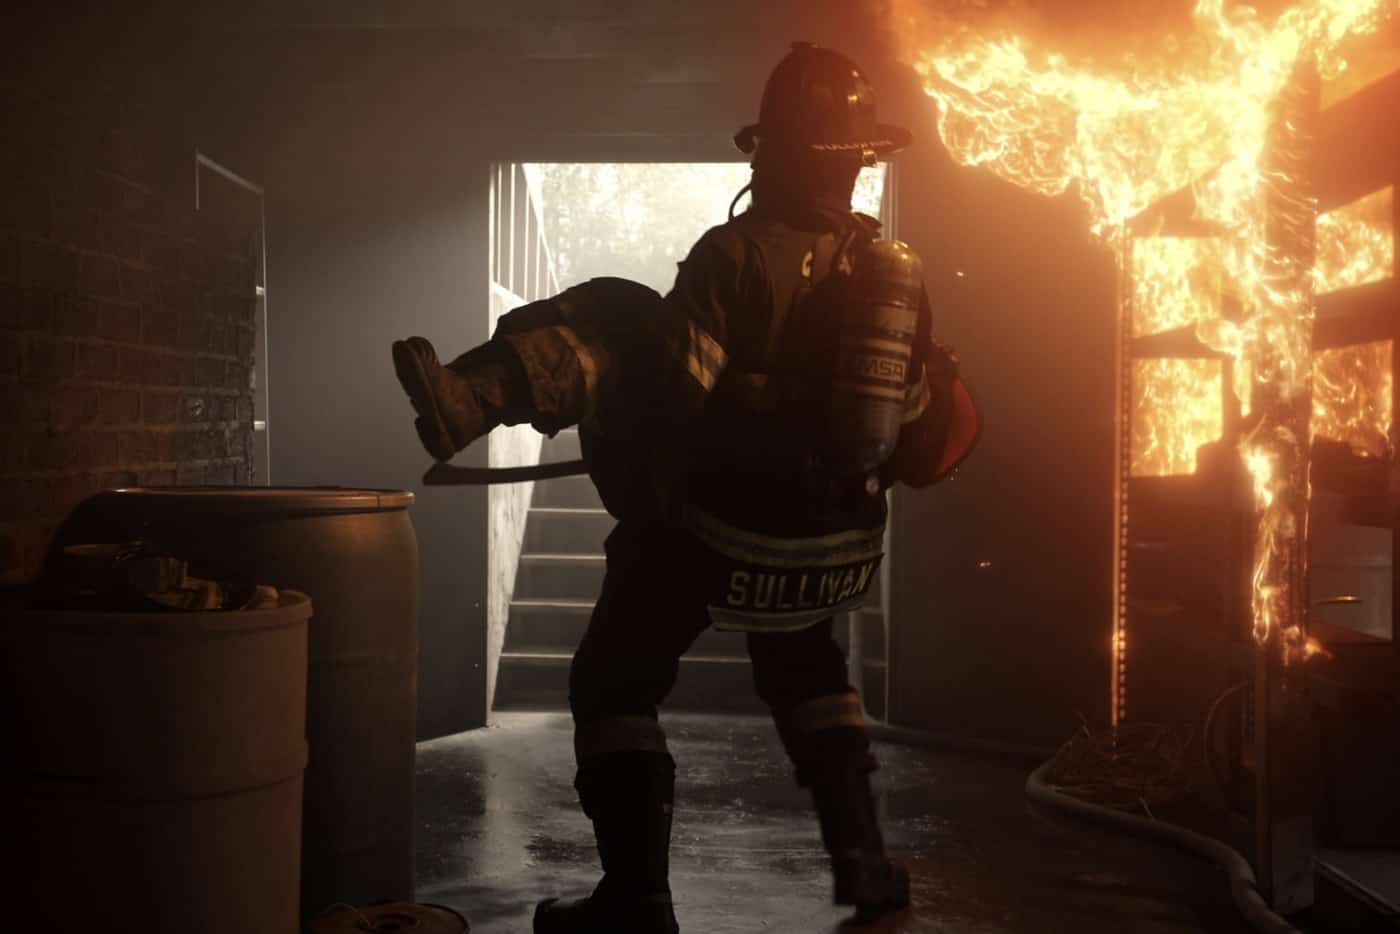 """STATION 19 Season 5 Episode 2 - """"Can't Feel My Face"""" – Andy and Sullivan's relationship continues to be tested. Meanwhile, Emmett joins Dean and Vic on a mental health call, and Maya does some soul searching on a new episode of """"Station 19,"""" THURSDAY, OCT. 7 (8:00-9:00 p.m. EDT), on ABC. (ABC) STATION 19"""